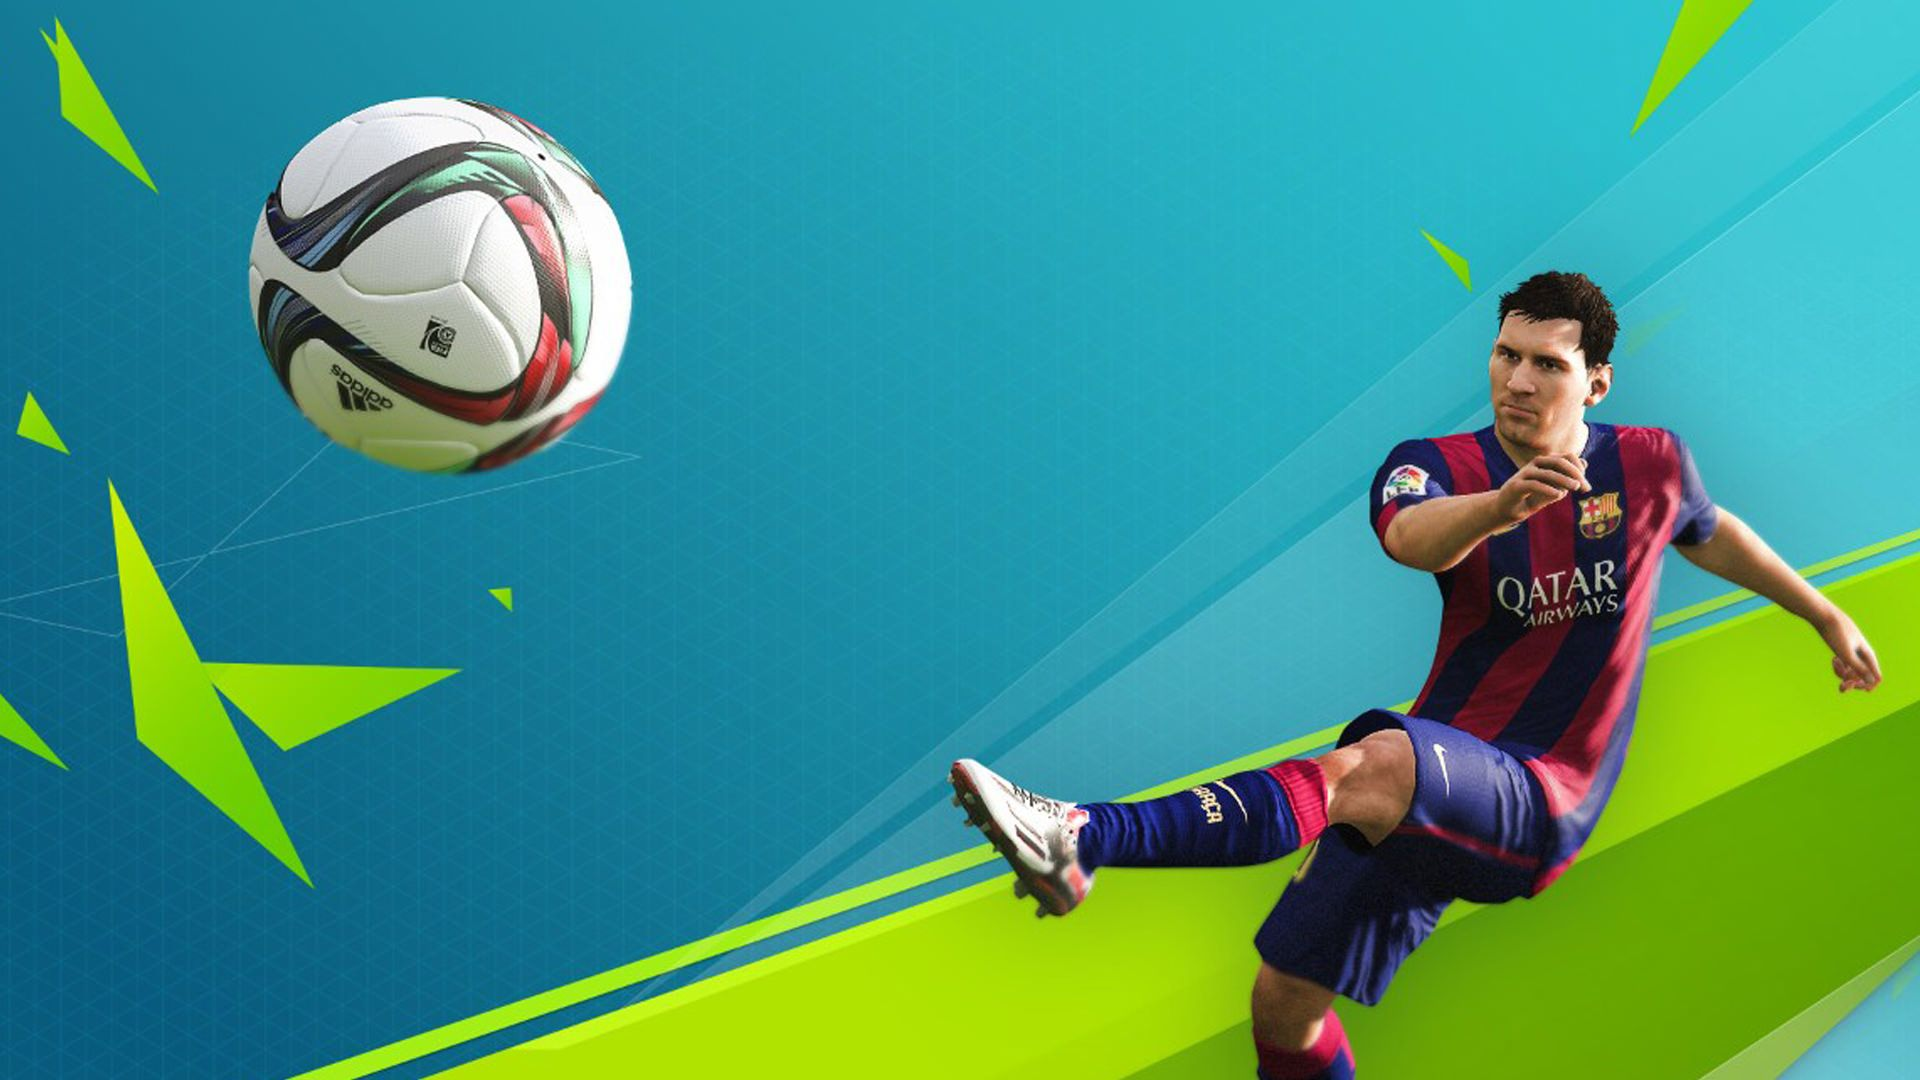 Fifa 16 Wallpaper Messi Fifa Wallpapers: Players, Teams, Leagues ...